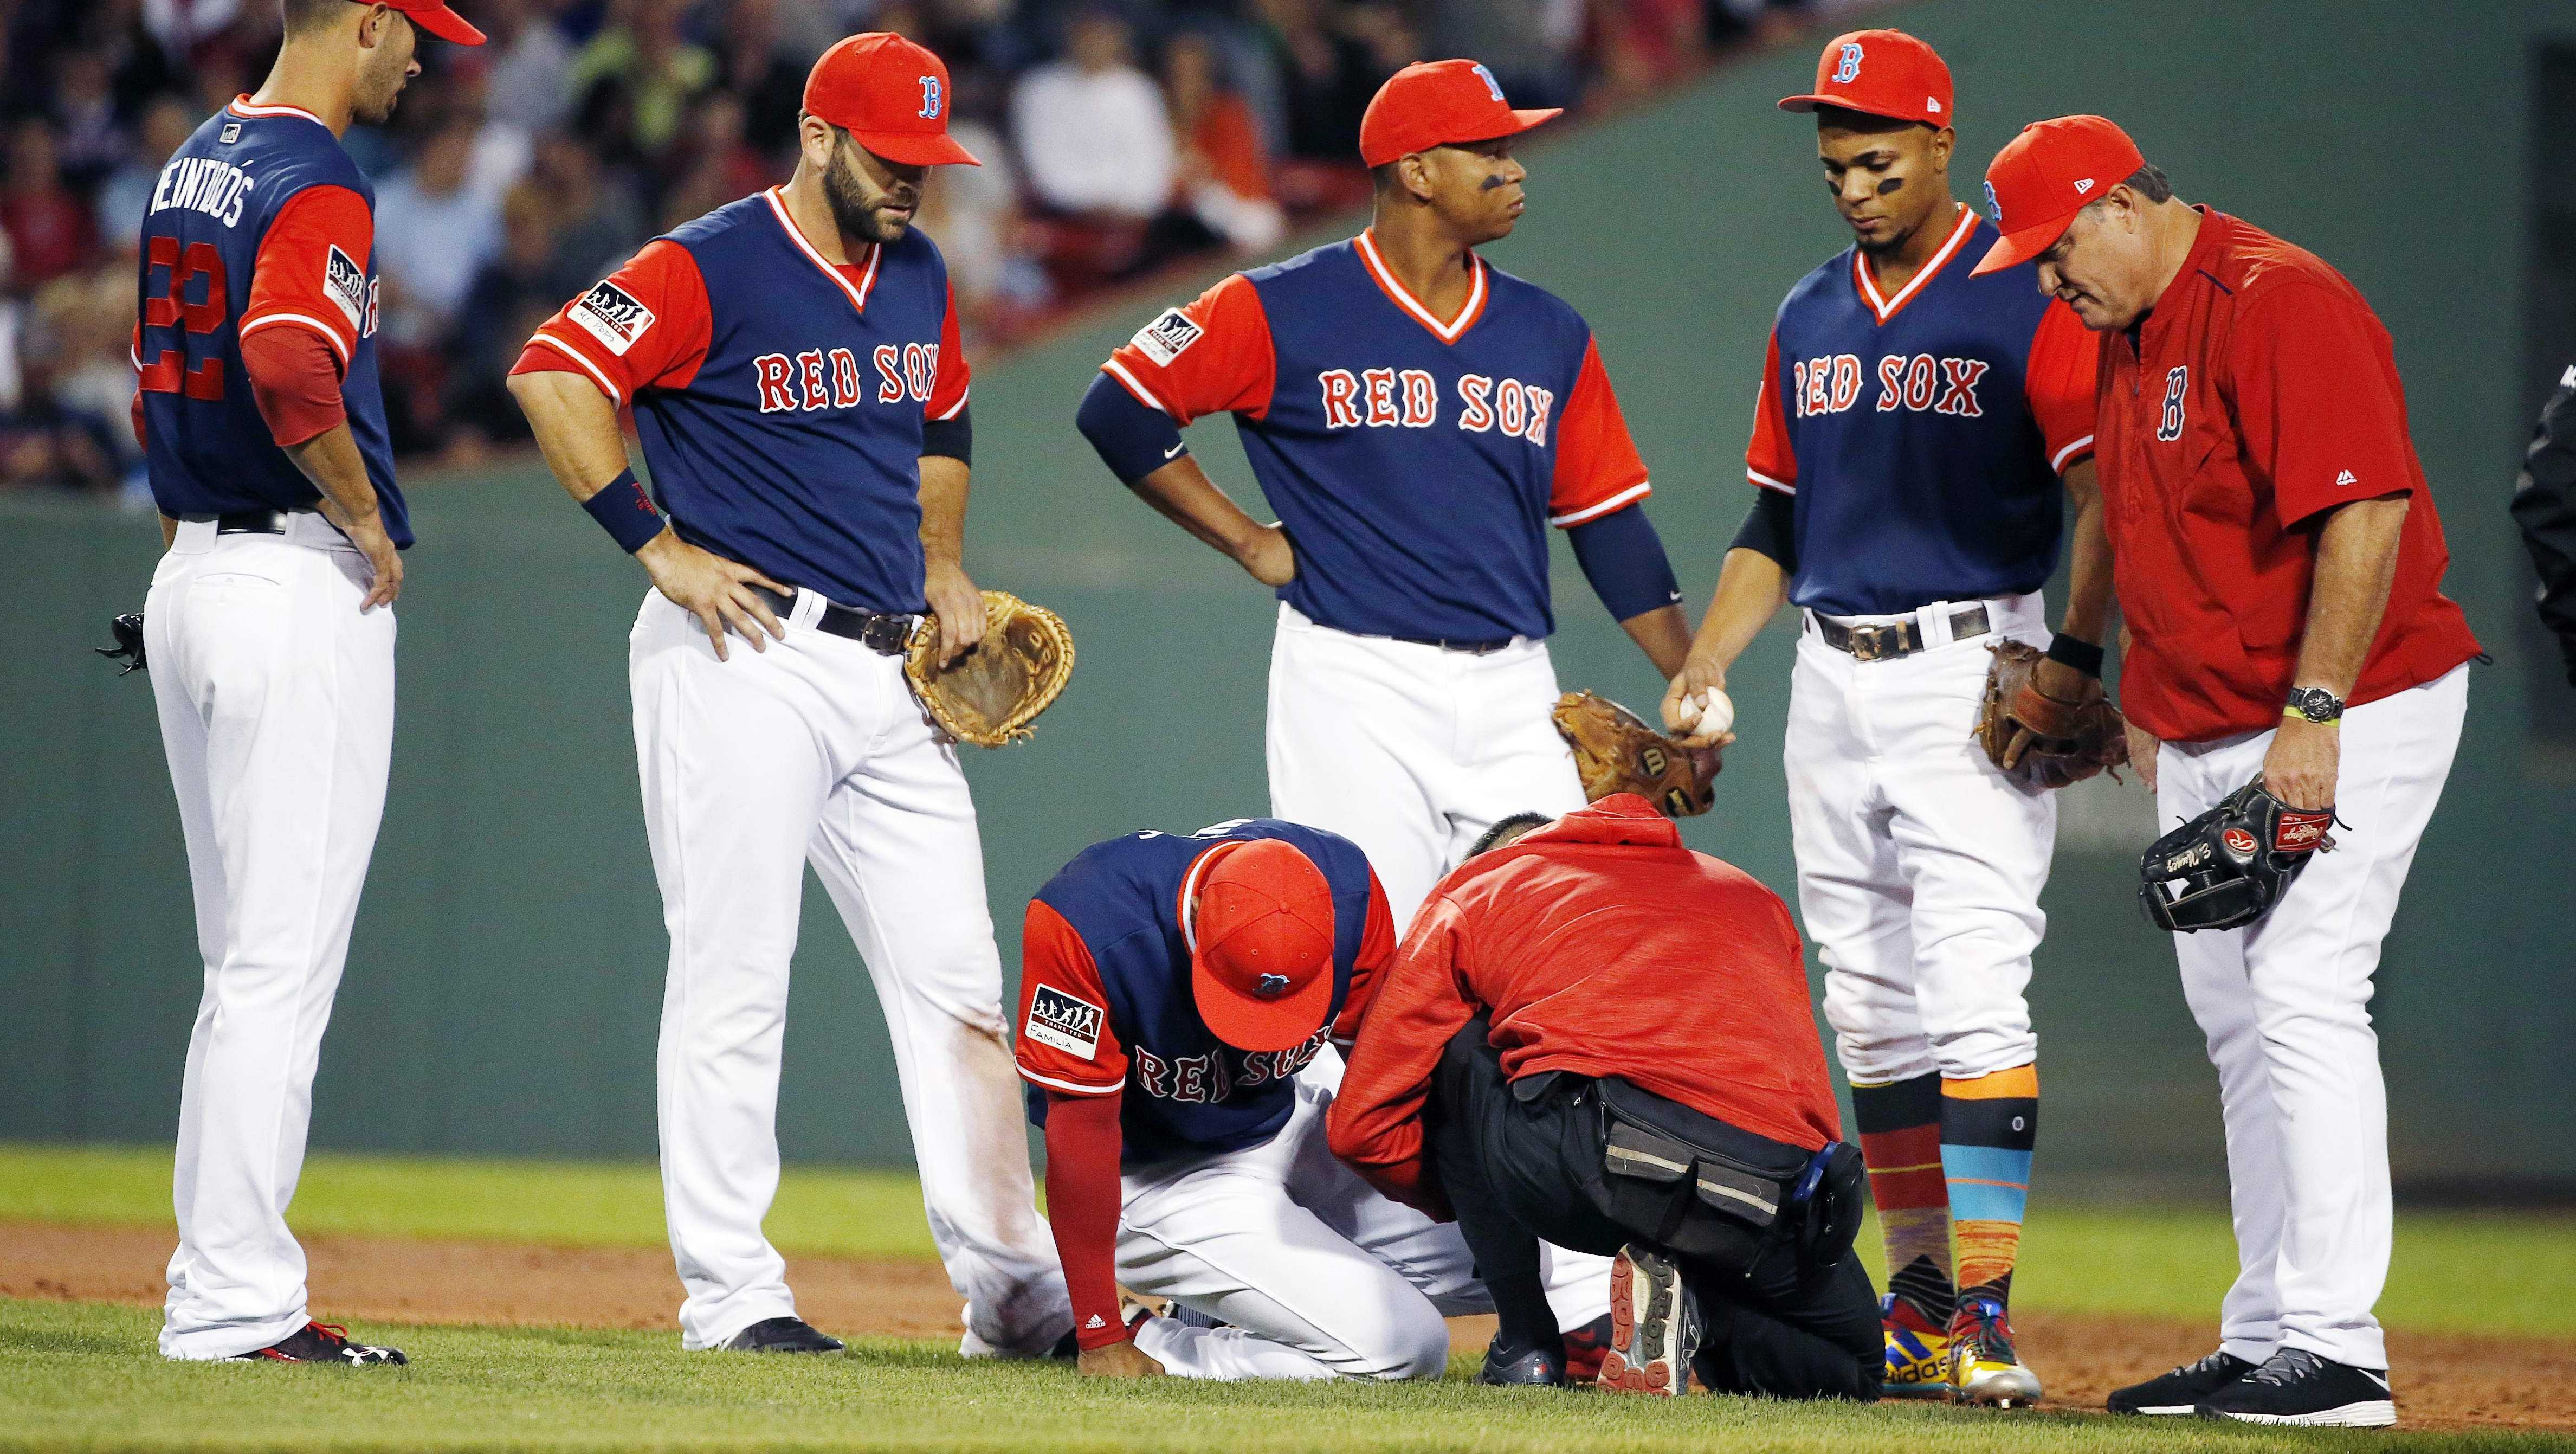 Boston Red Sox manager John Farrell, right, and players gather around Boston Red Sox's Eduardo Nunez, bottom left, after he was injured on a play during the second inning of a baseball game in Boston, Friday, Aug. 25, 2017.